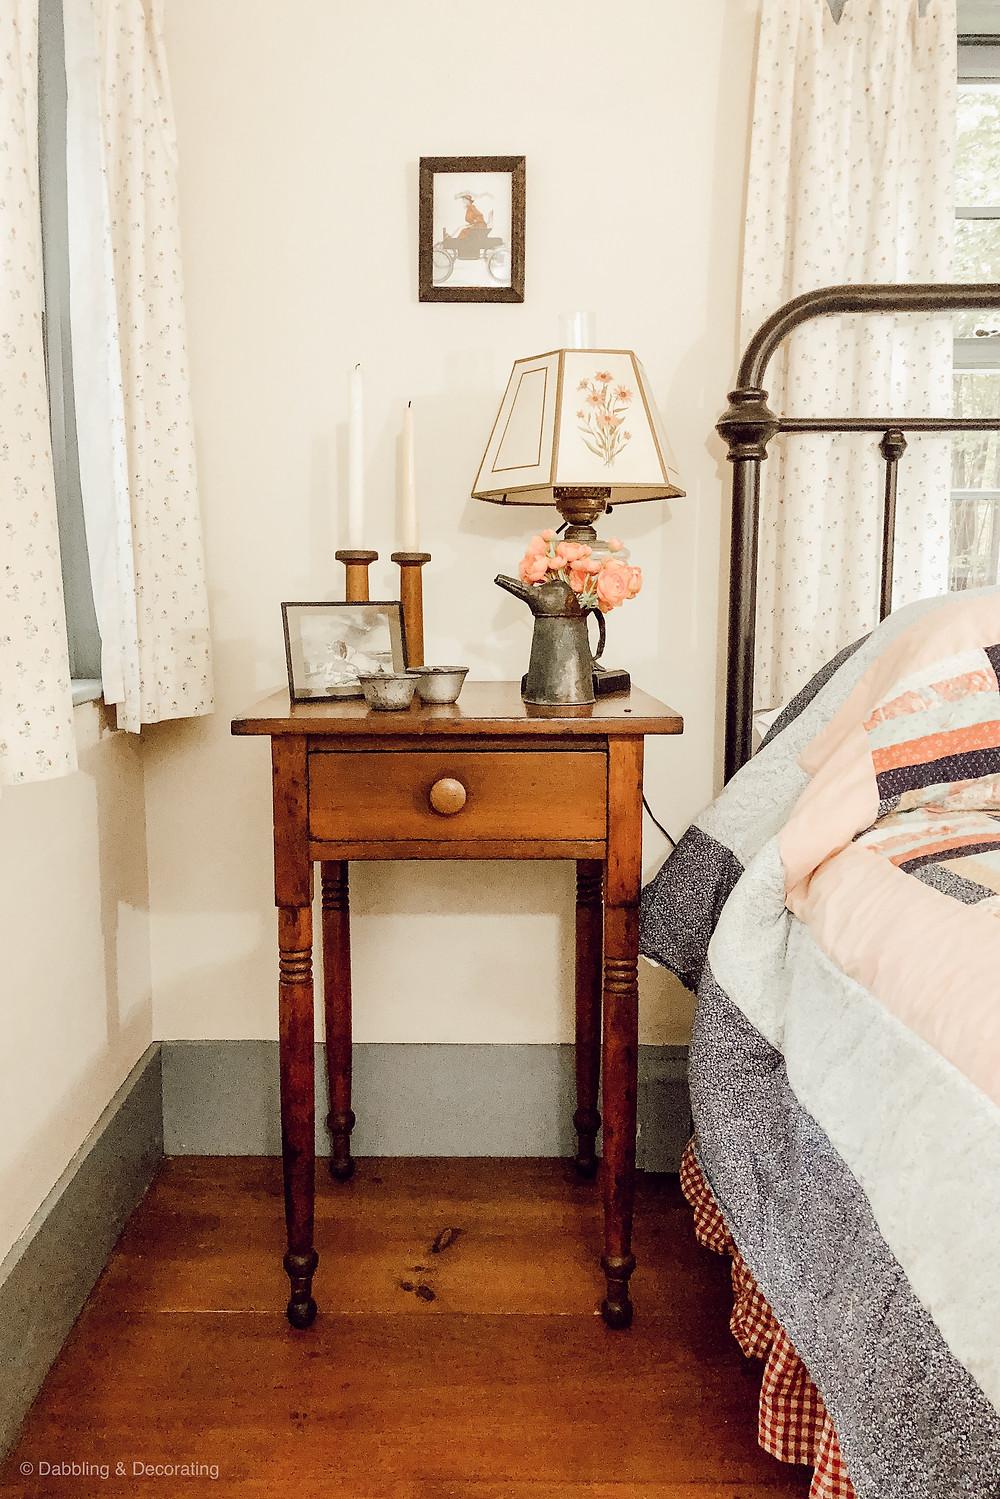 Guest Bedroom Ideas Created with Antique Family Keepsakes